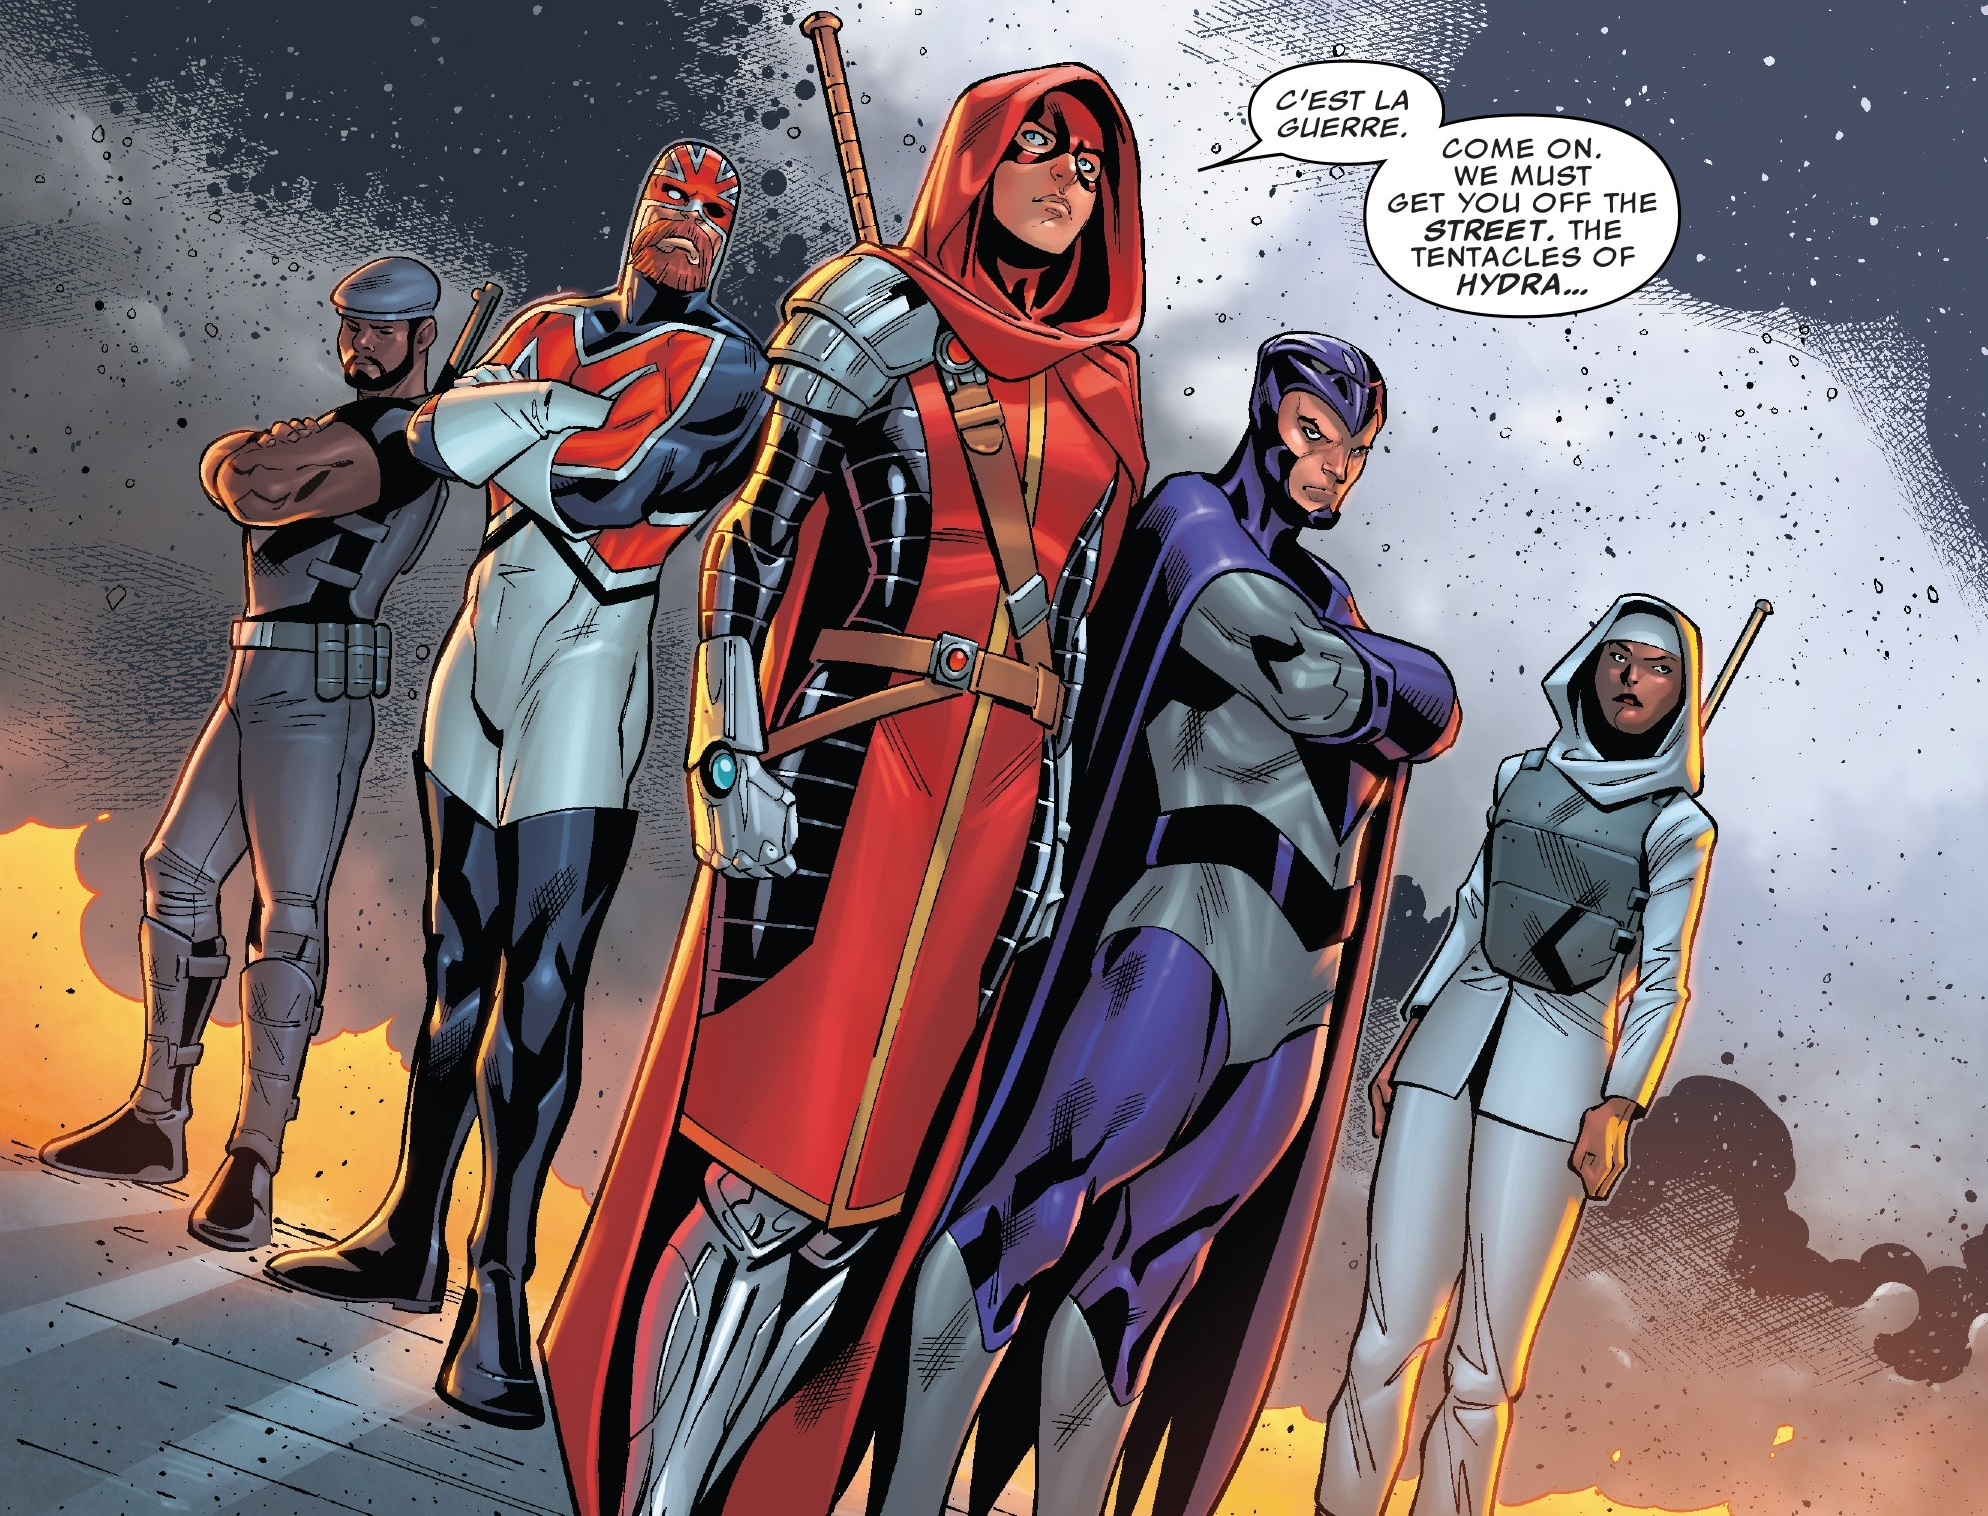 Champions of Europe (Earth-616)